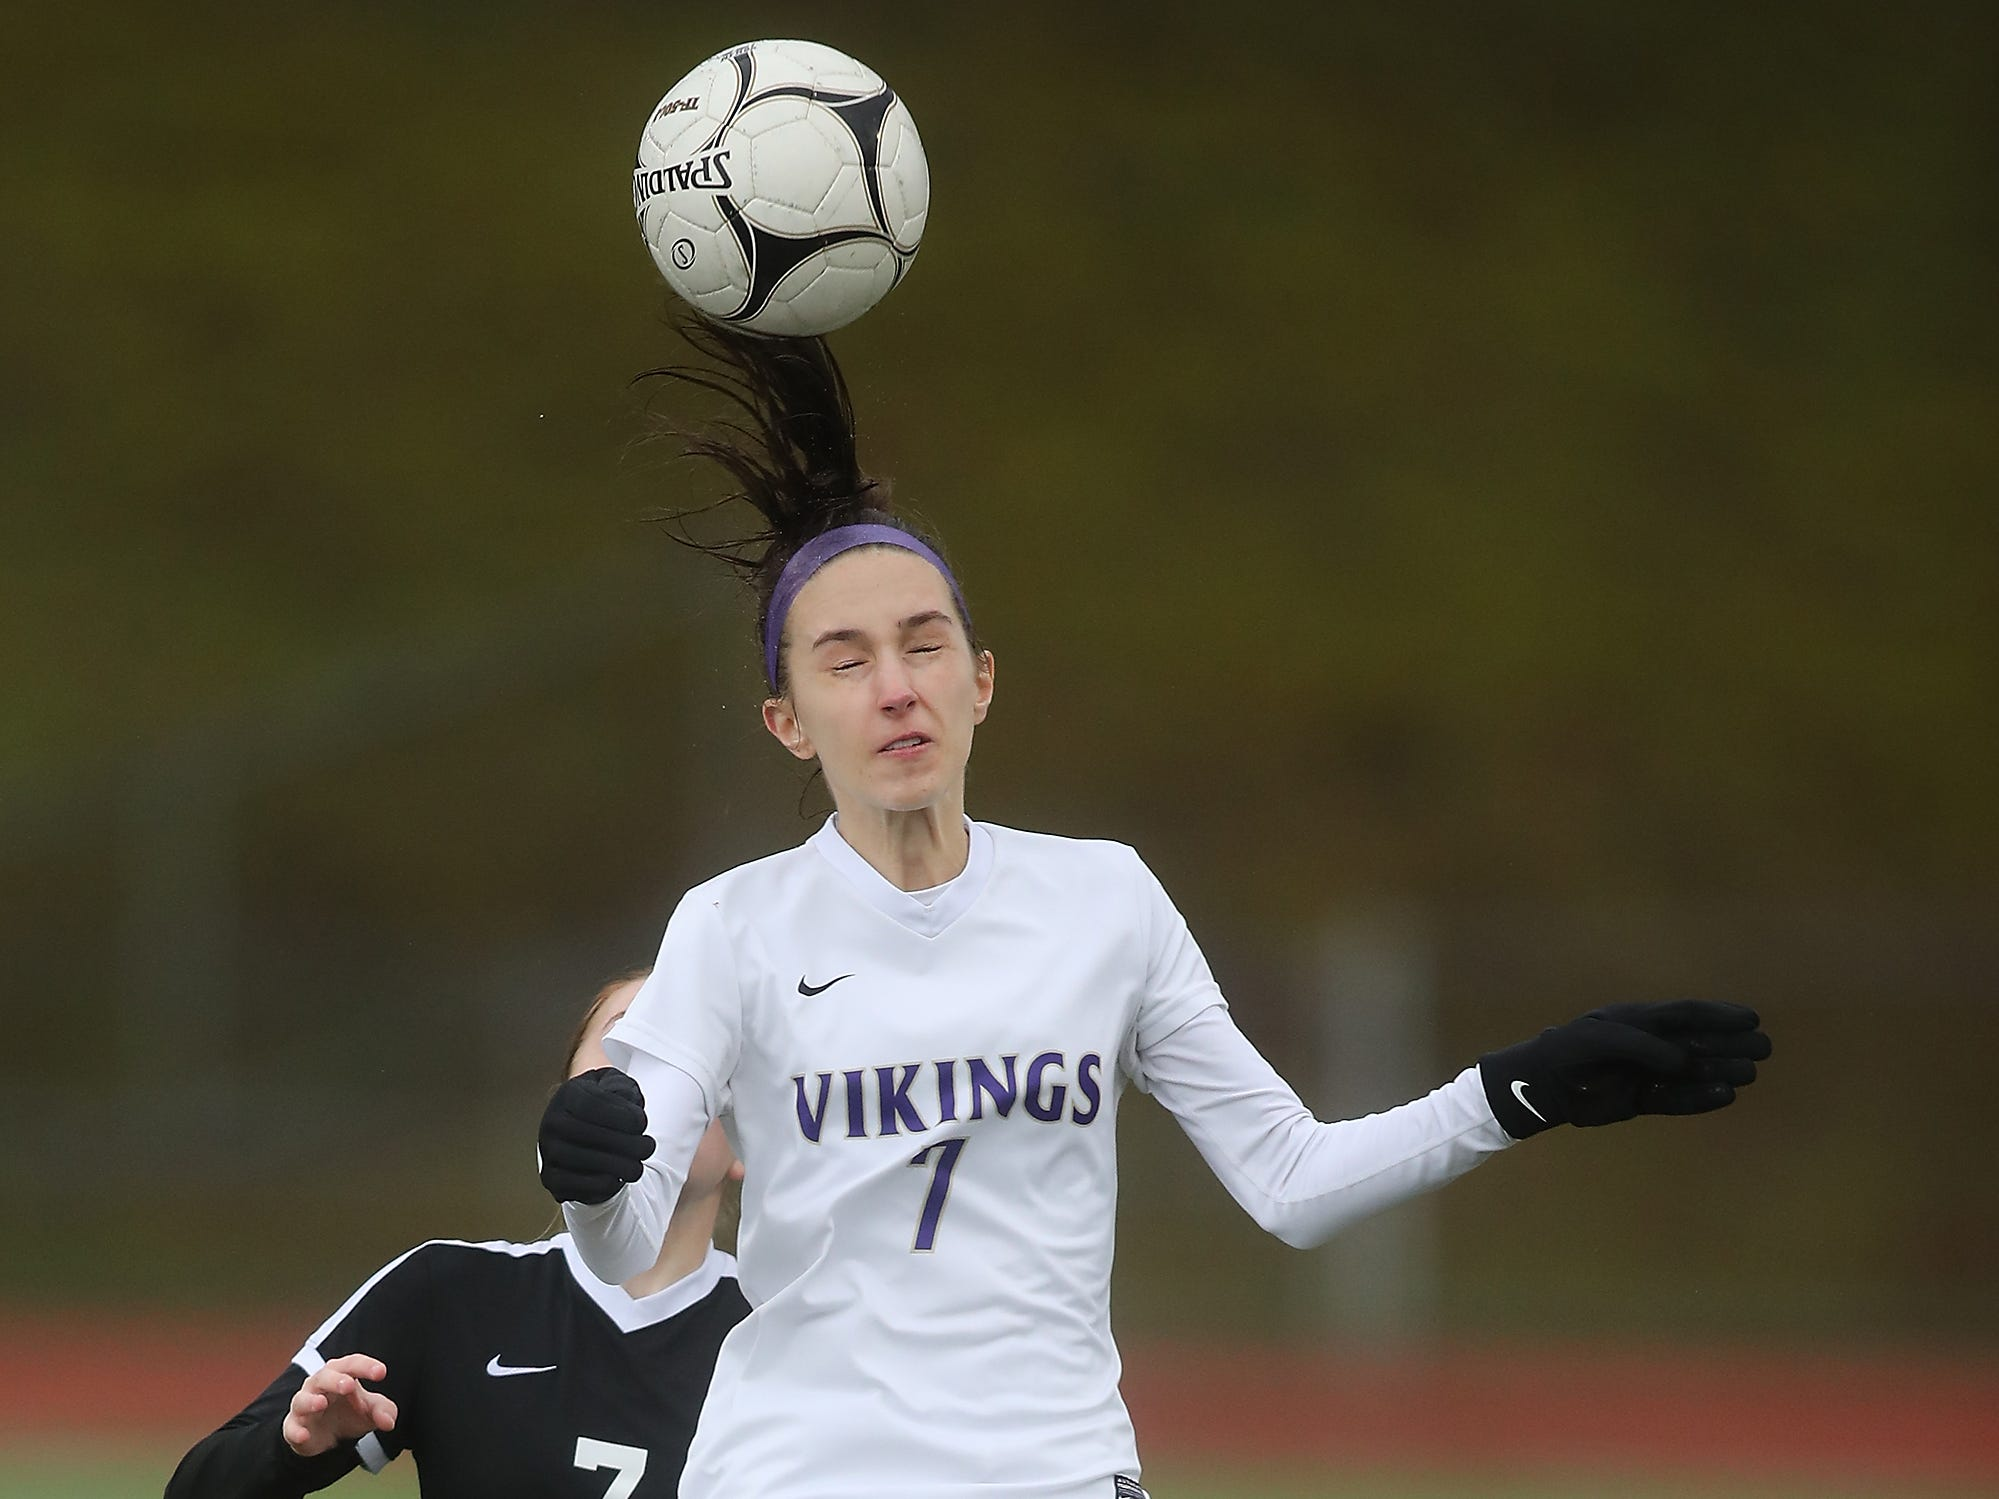 North Kitsap vs. Sequim girls soccer at Silverdale Stadium on Saturday, November 3, 2018.